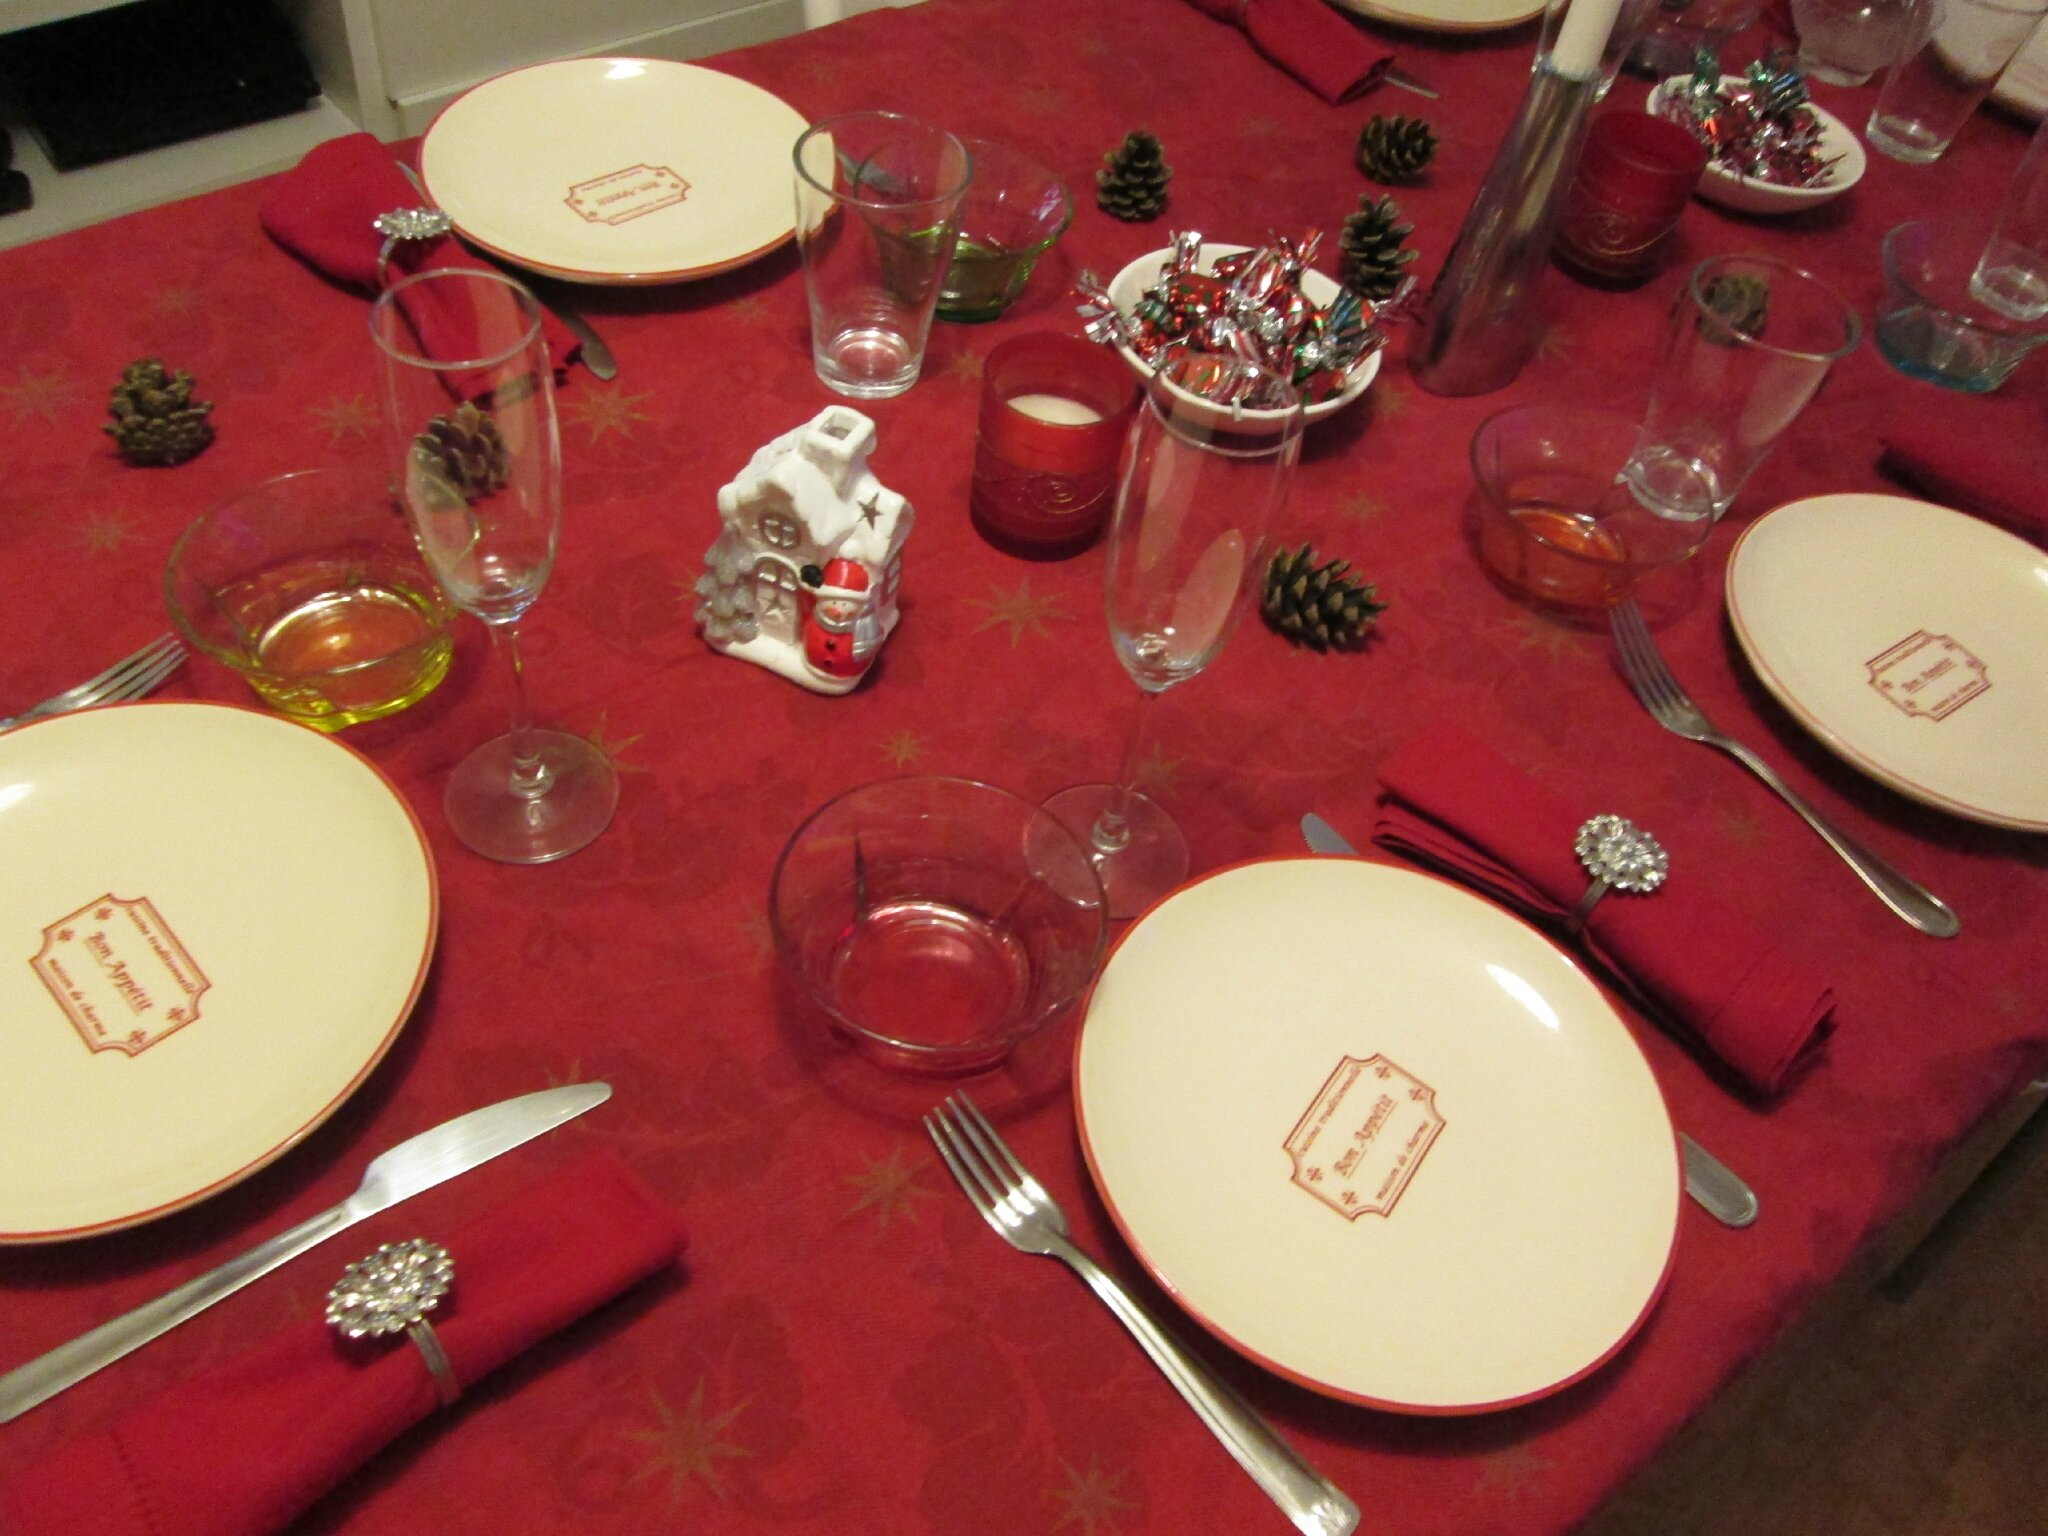 Decoration de table jour de l 39 an 2014 la cuisine de christelle - Deco de table jour de l an ...